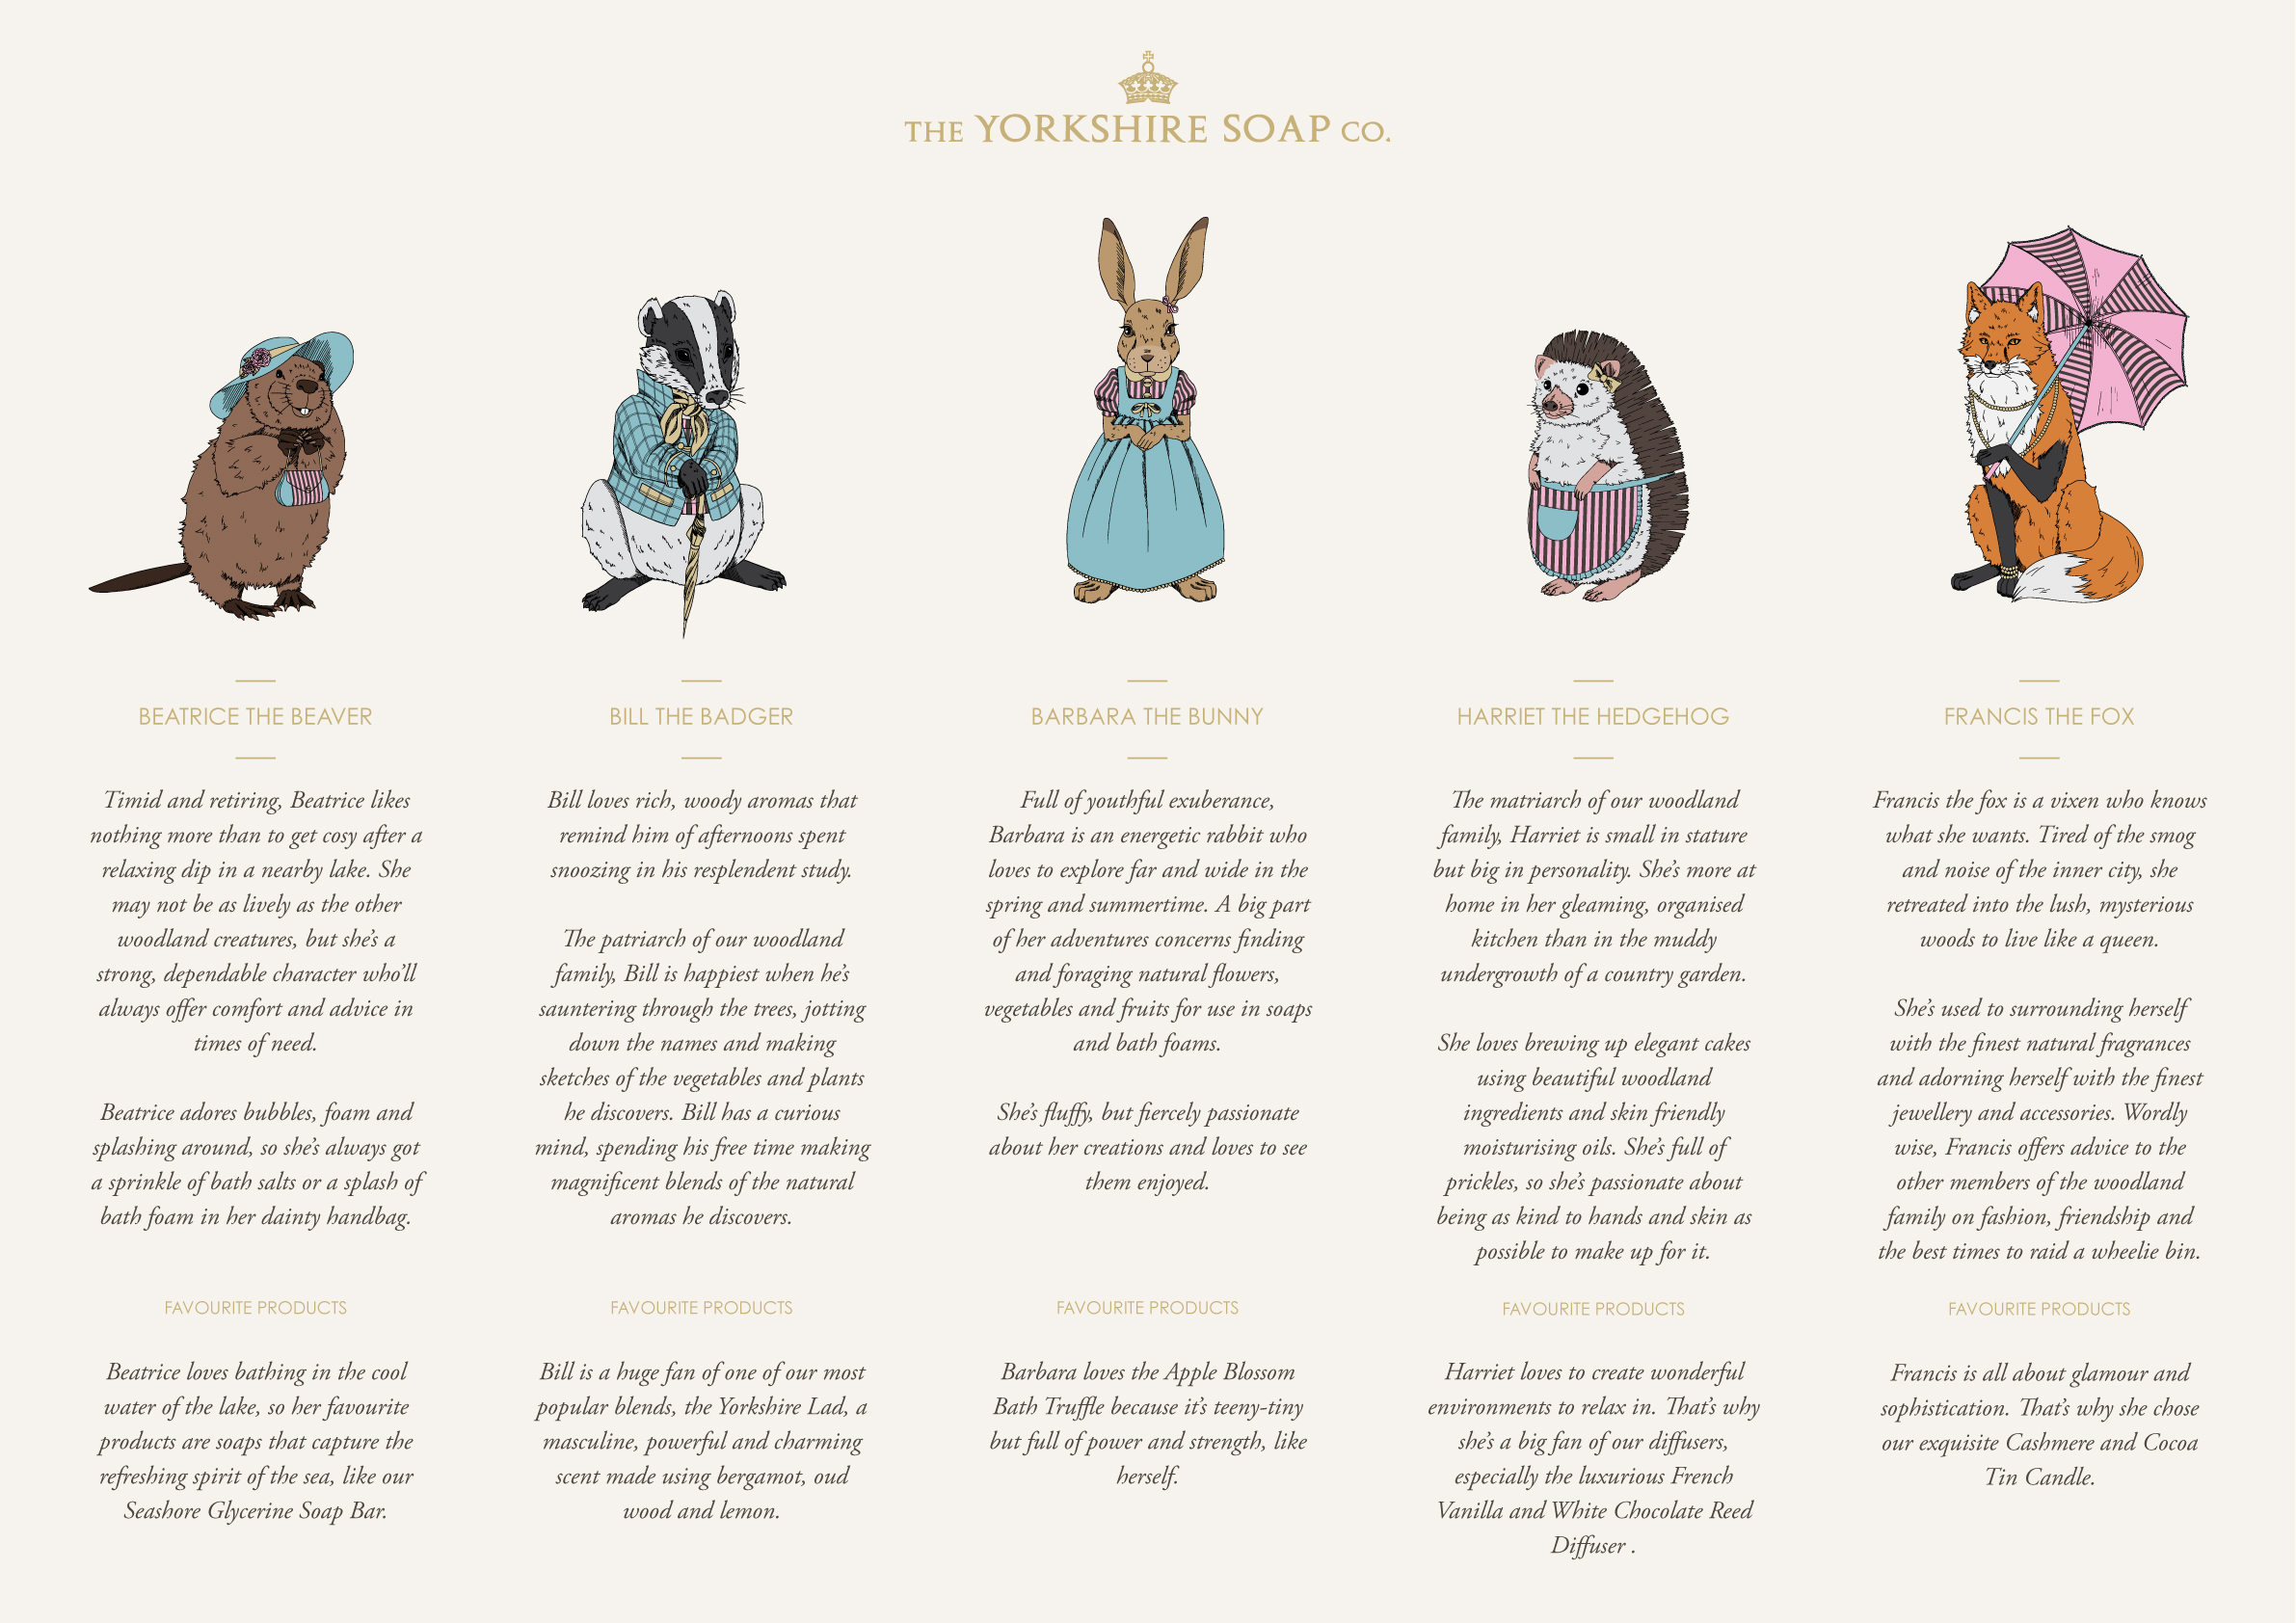 The Yorkshire Soap Company characters